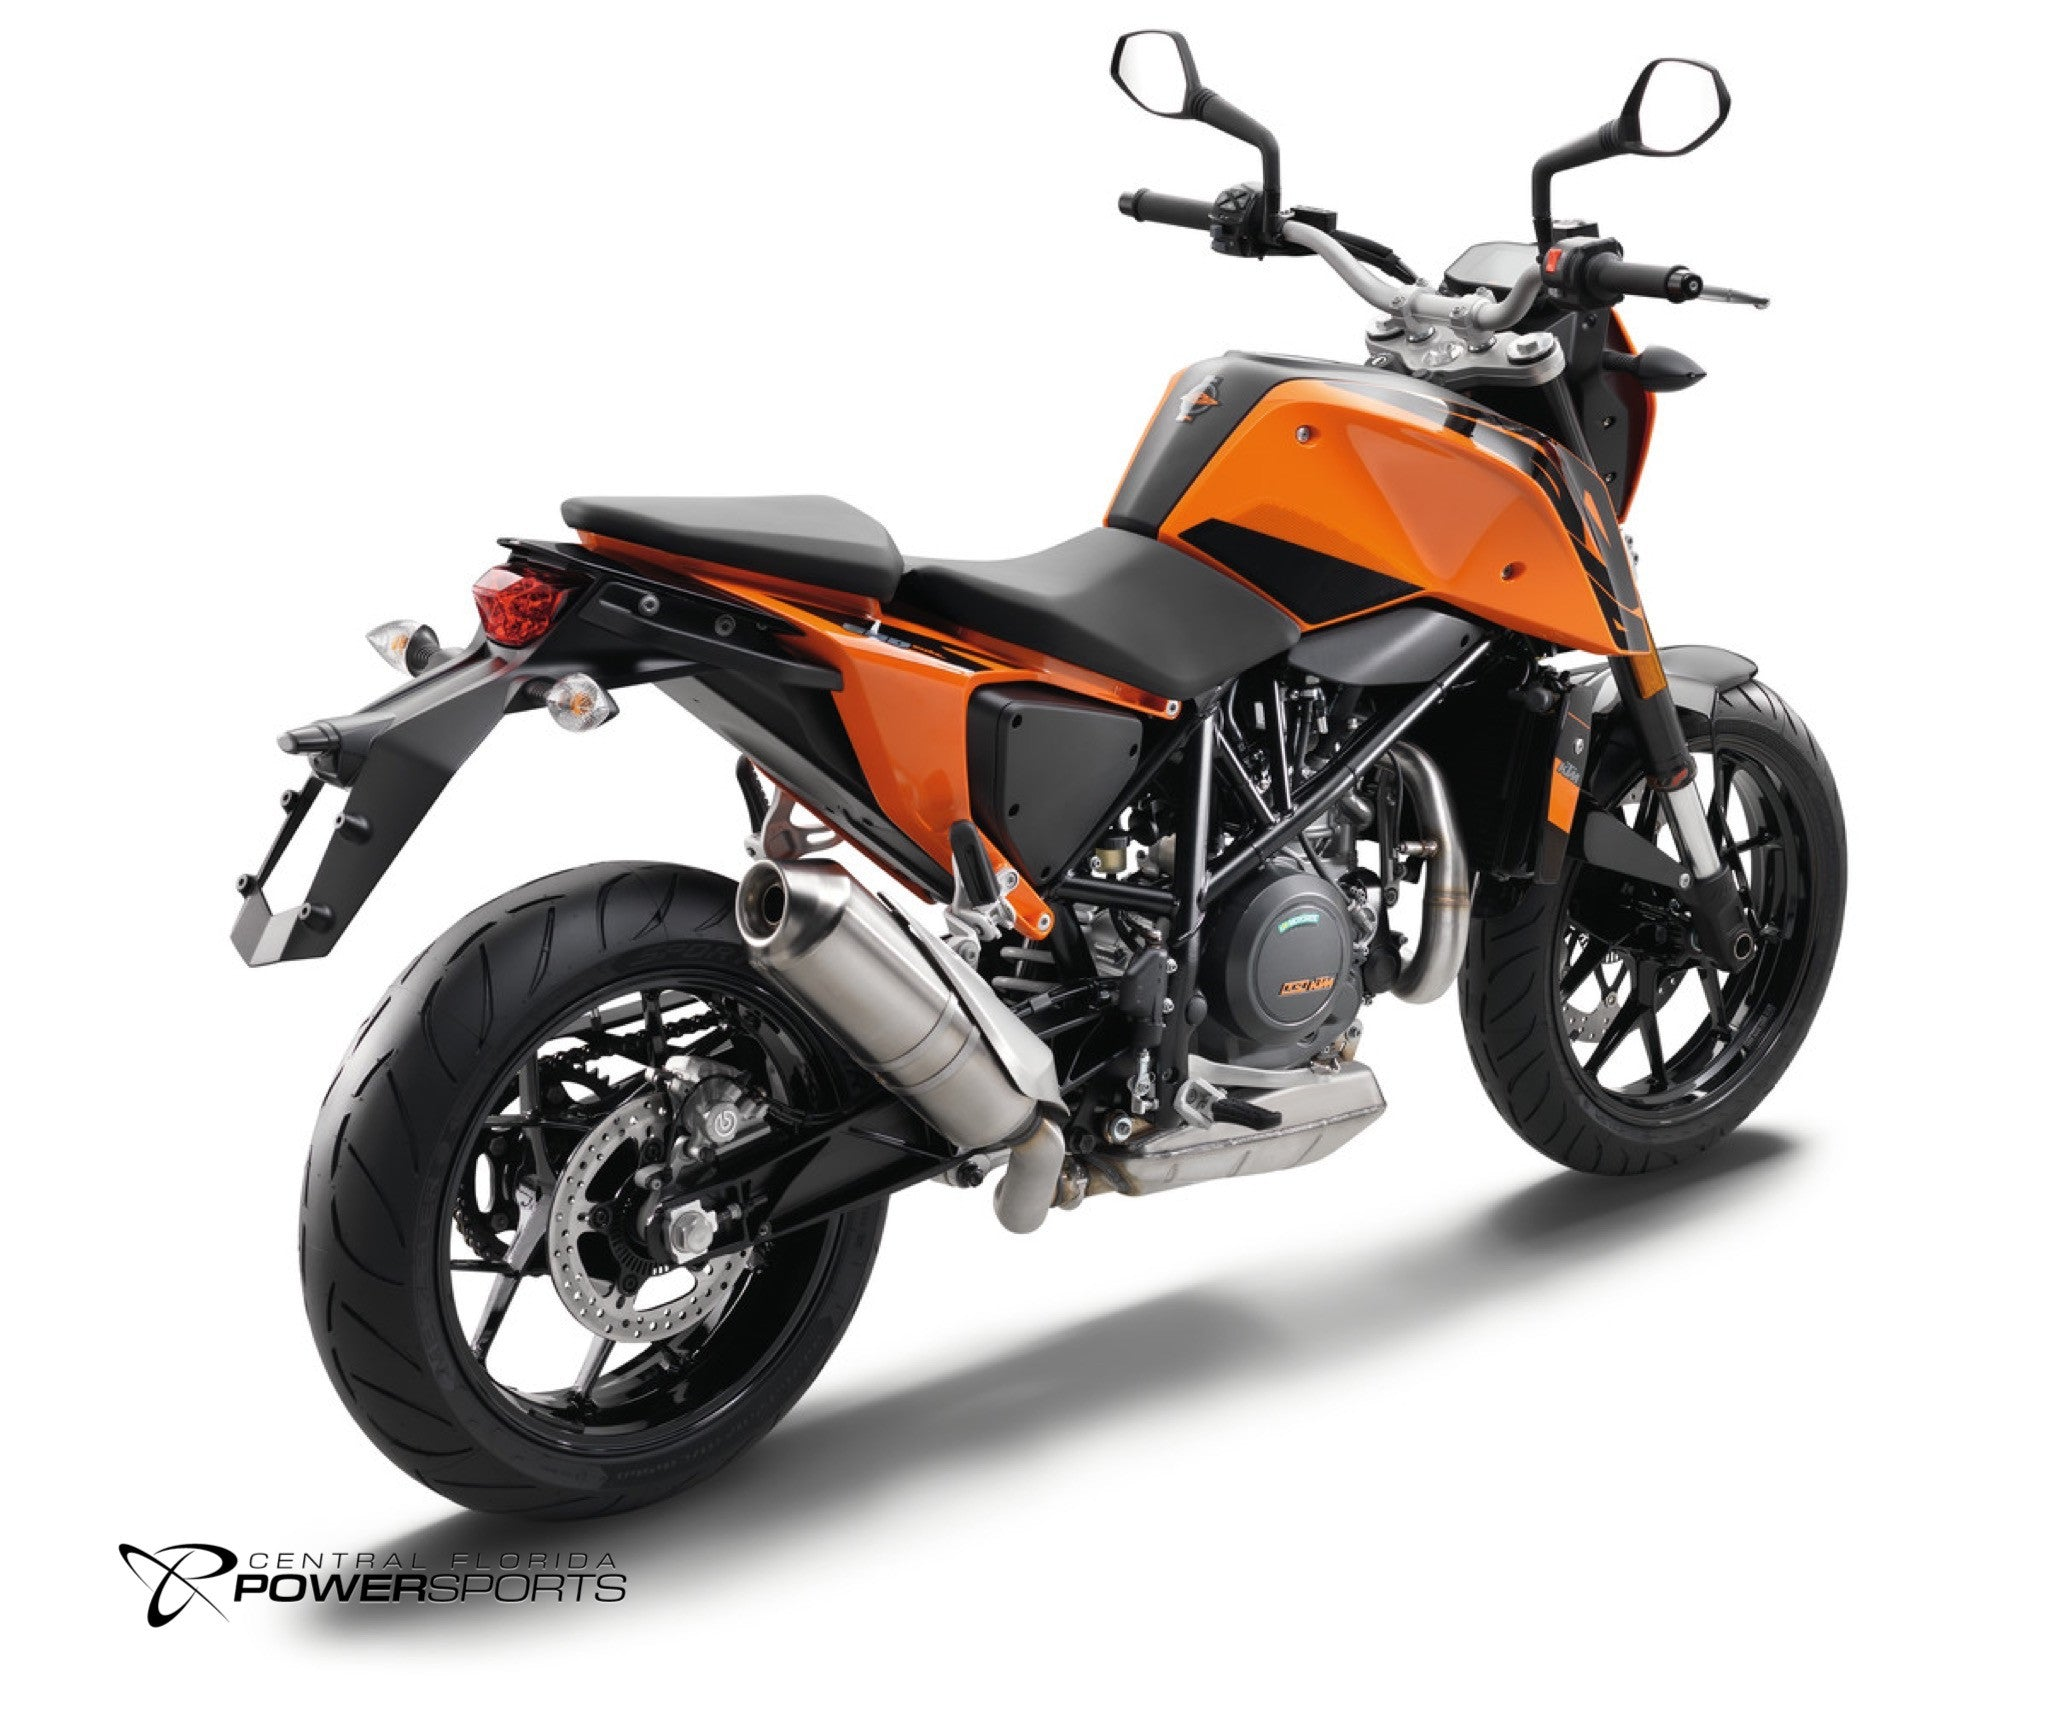 new 2017 ktm 390 duke abs standard motorcycle for sale central florida powersports. Black Bedroom Furniture Sets. Home Design Ideas